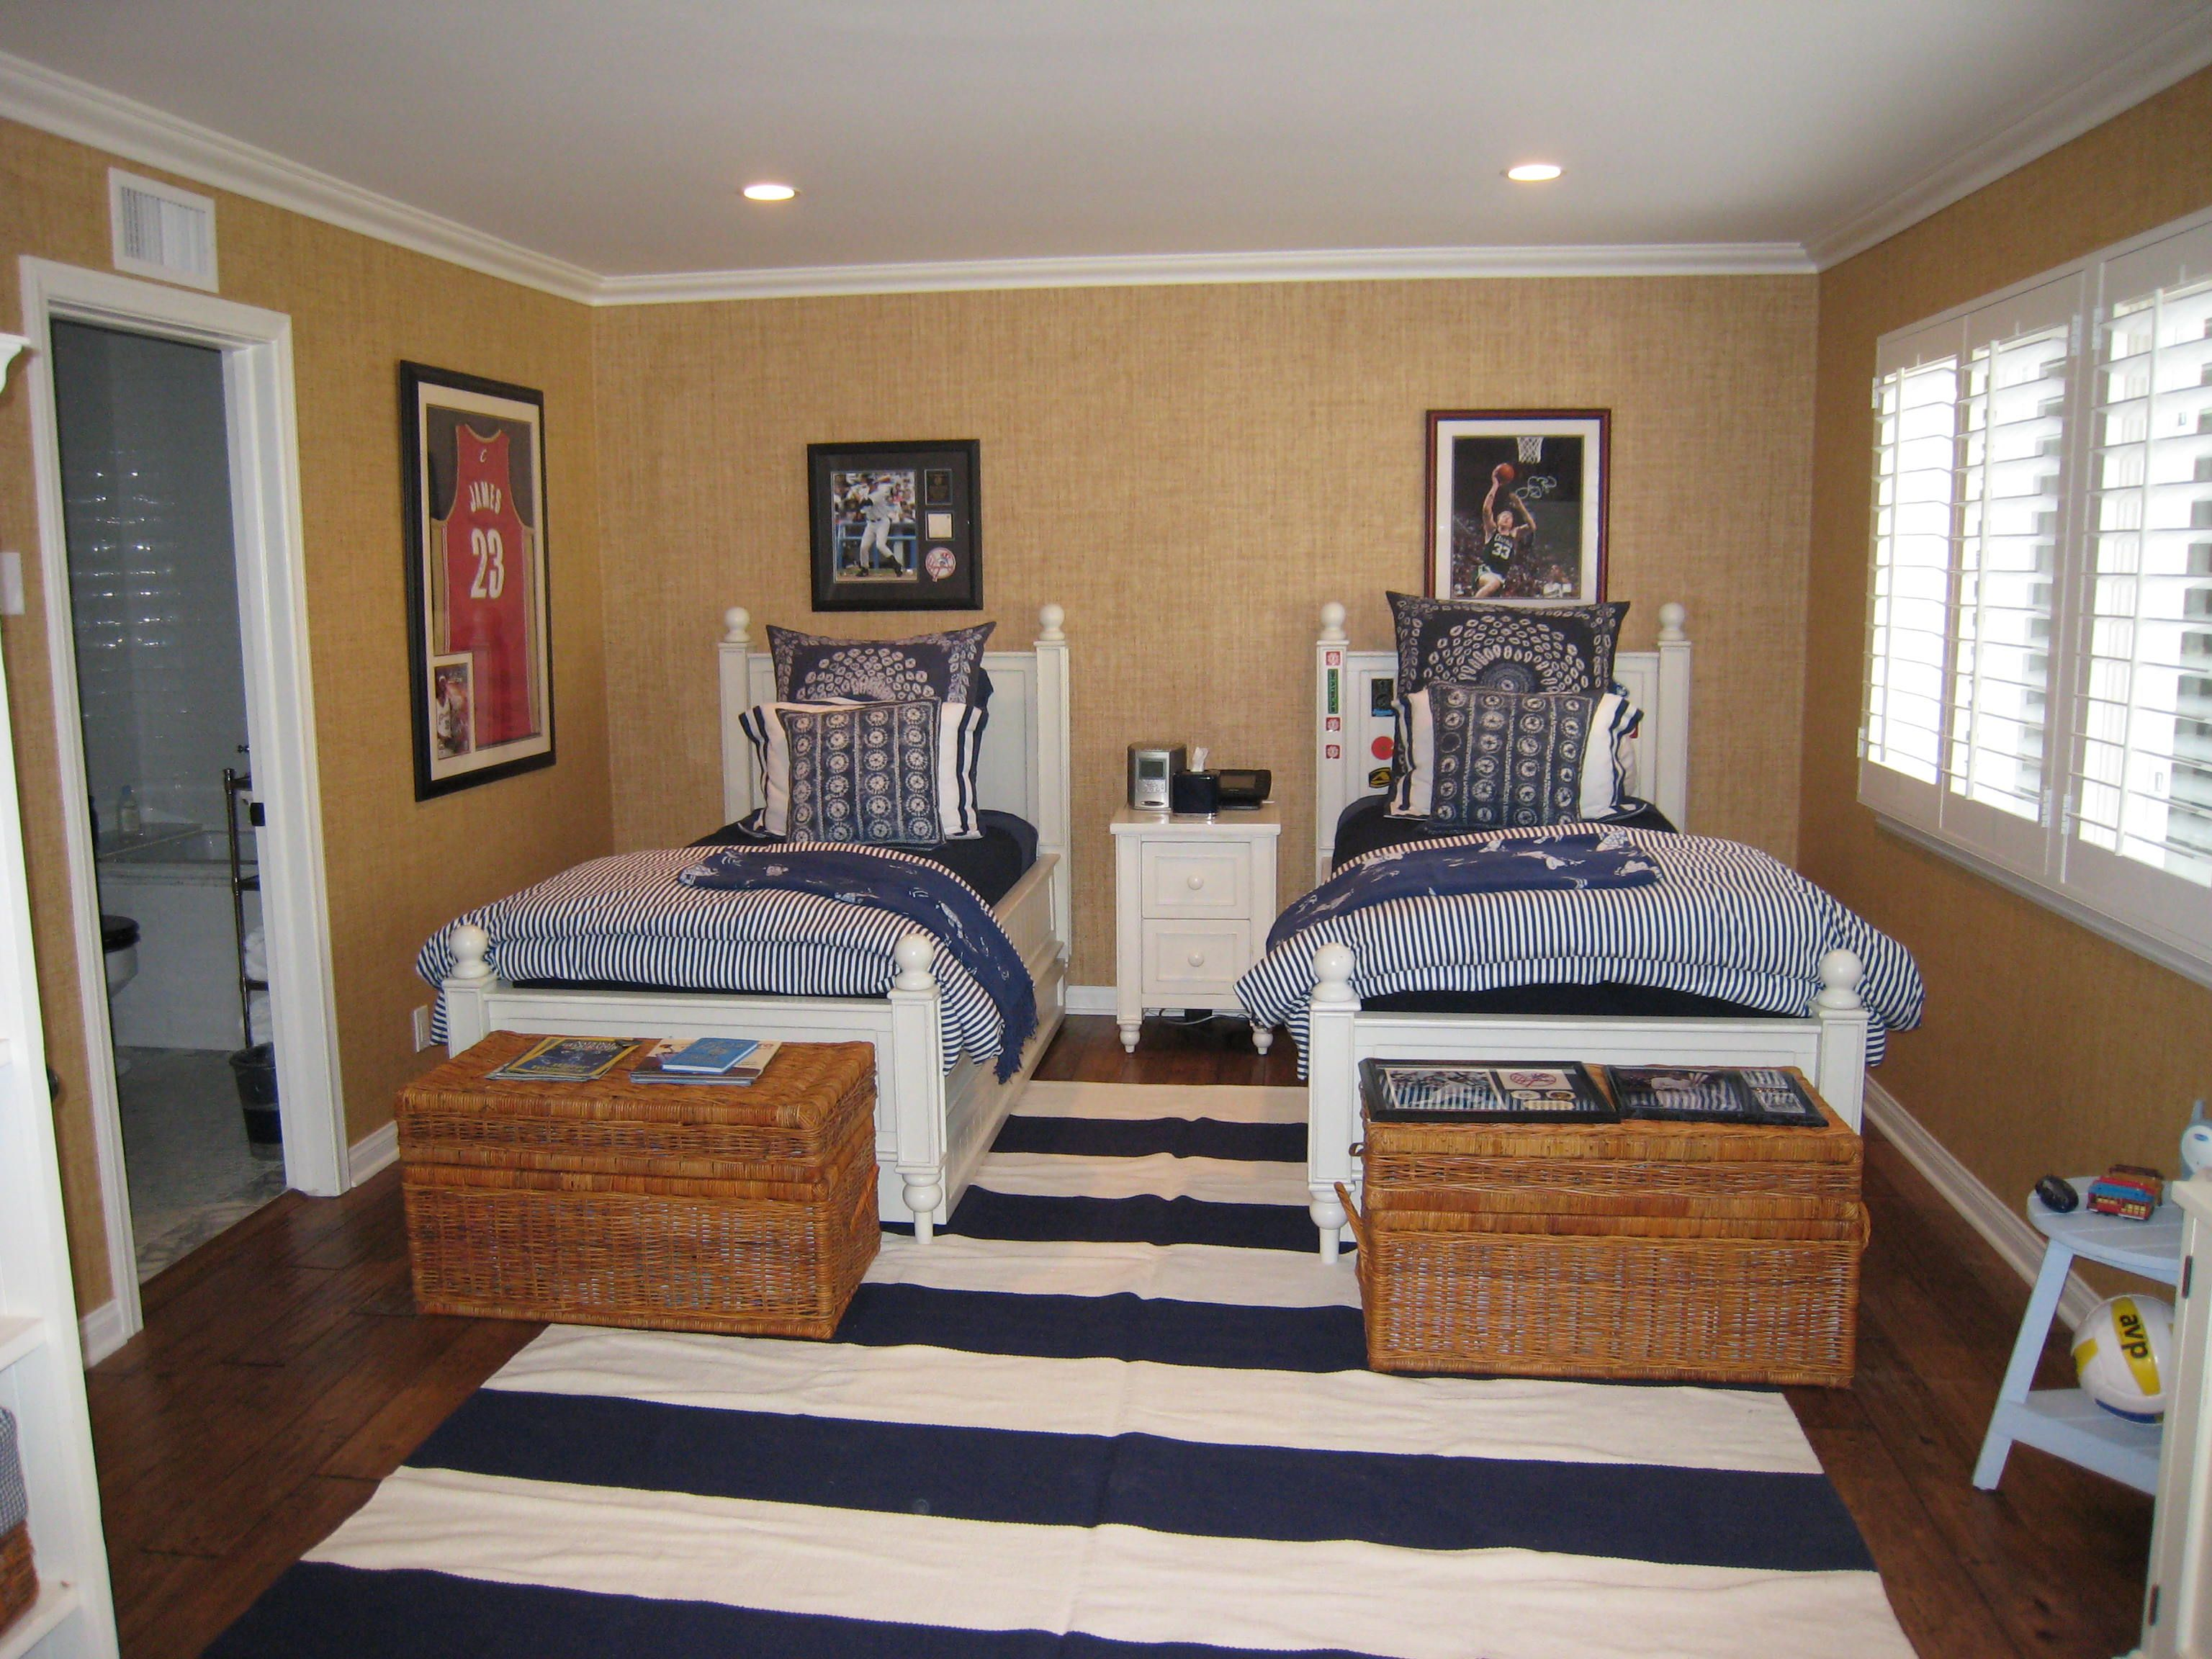 Pin by Stacey Irving on boys rooms Blue white bedroom